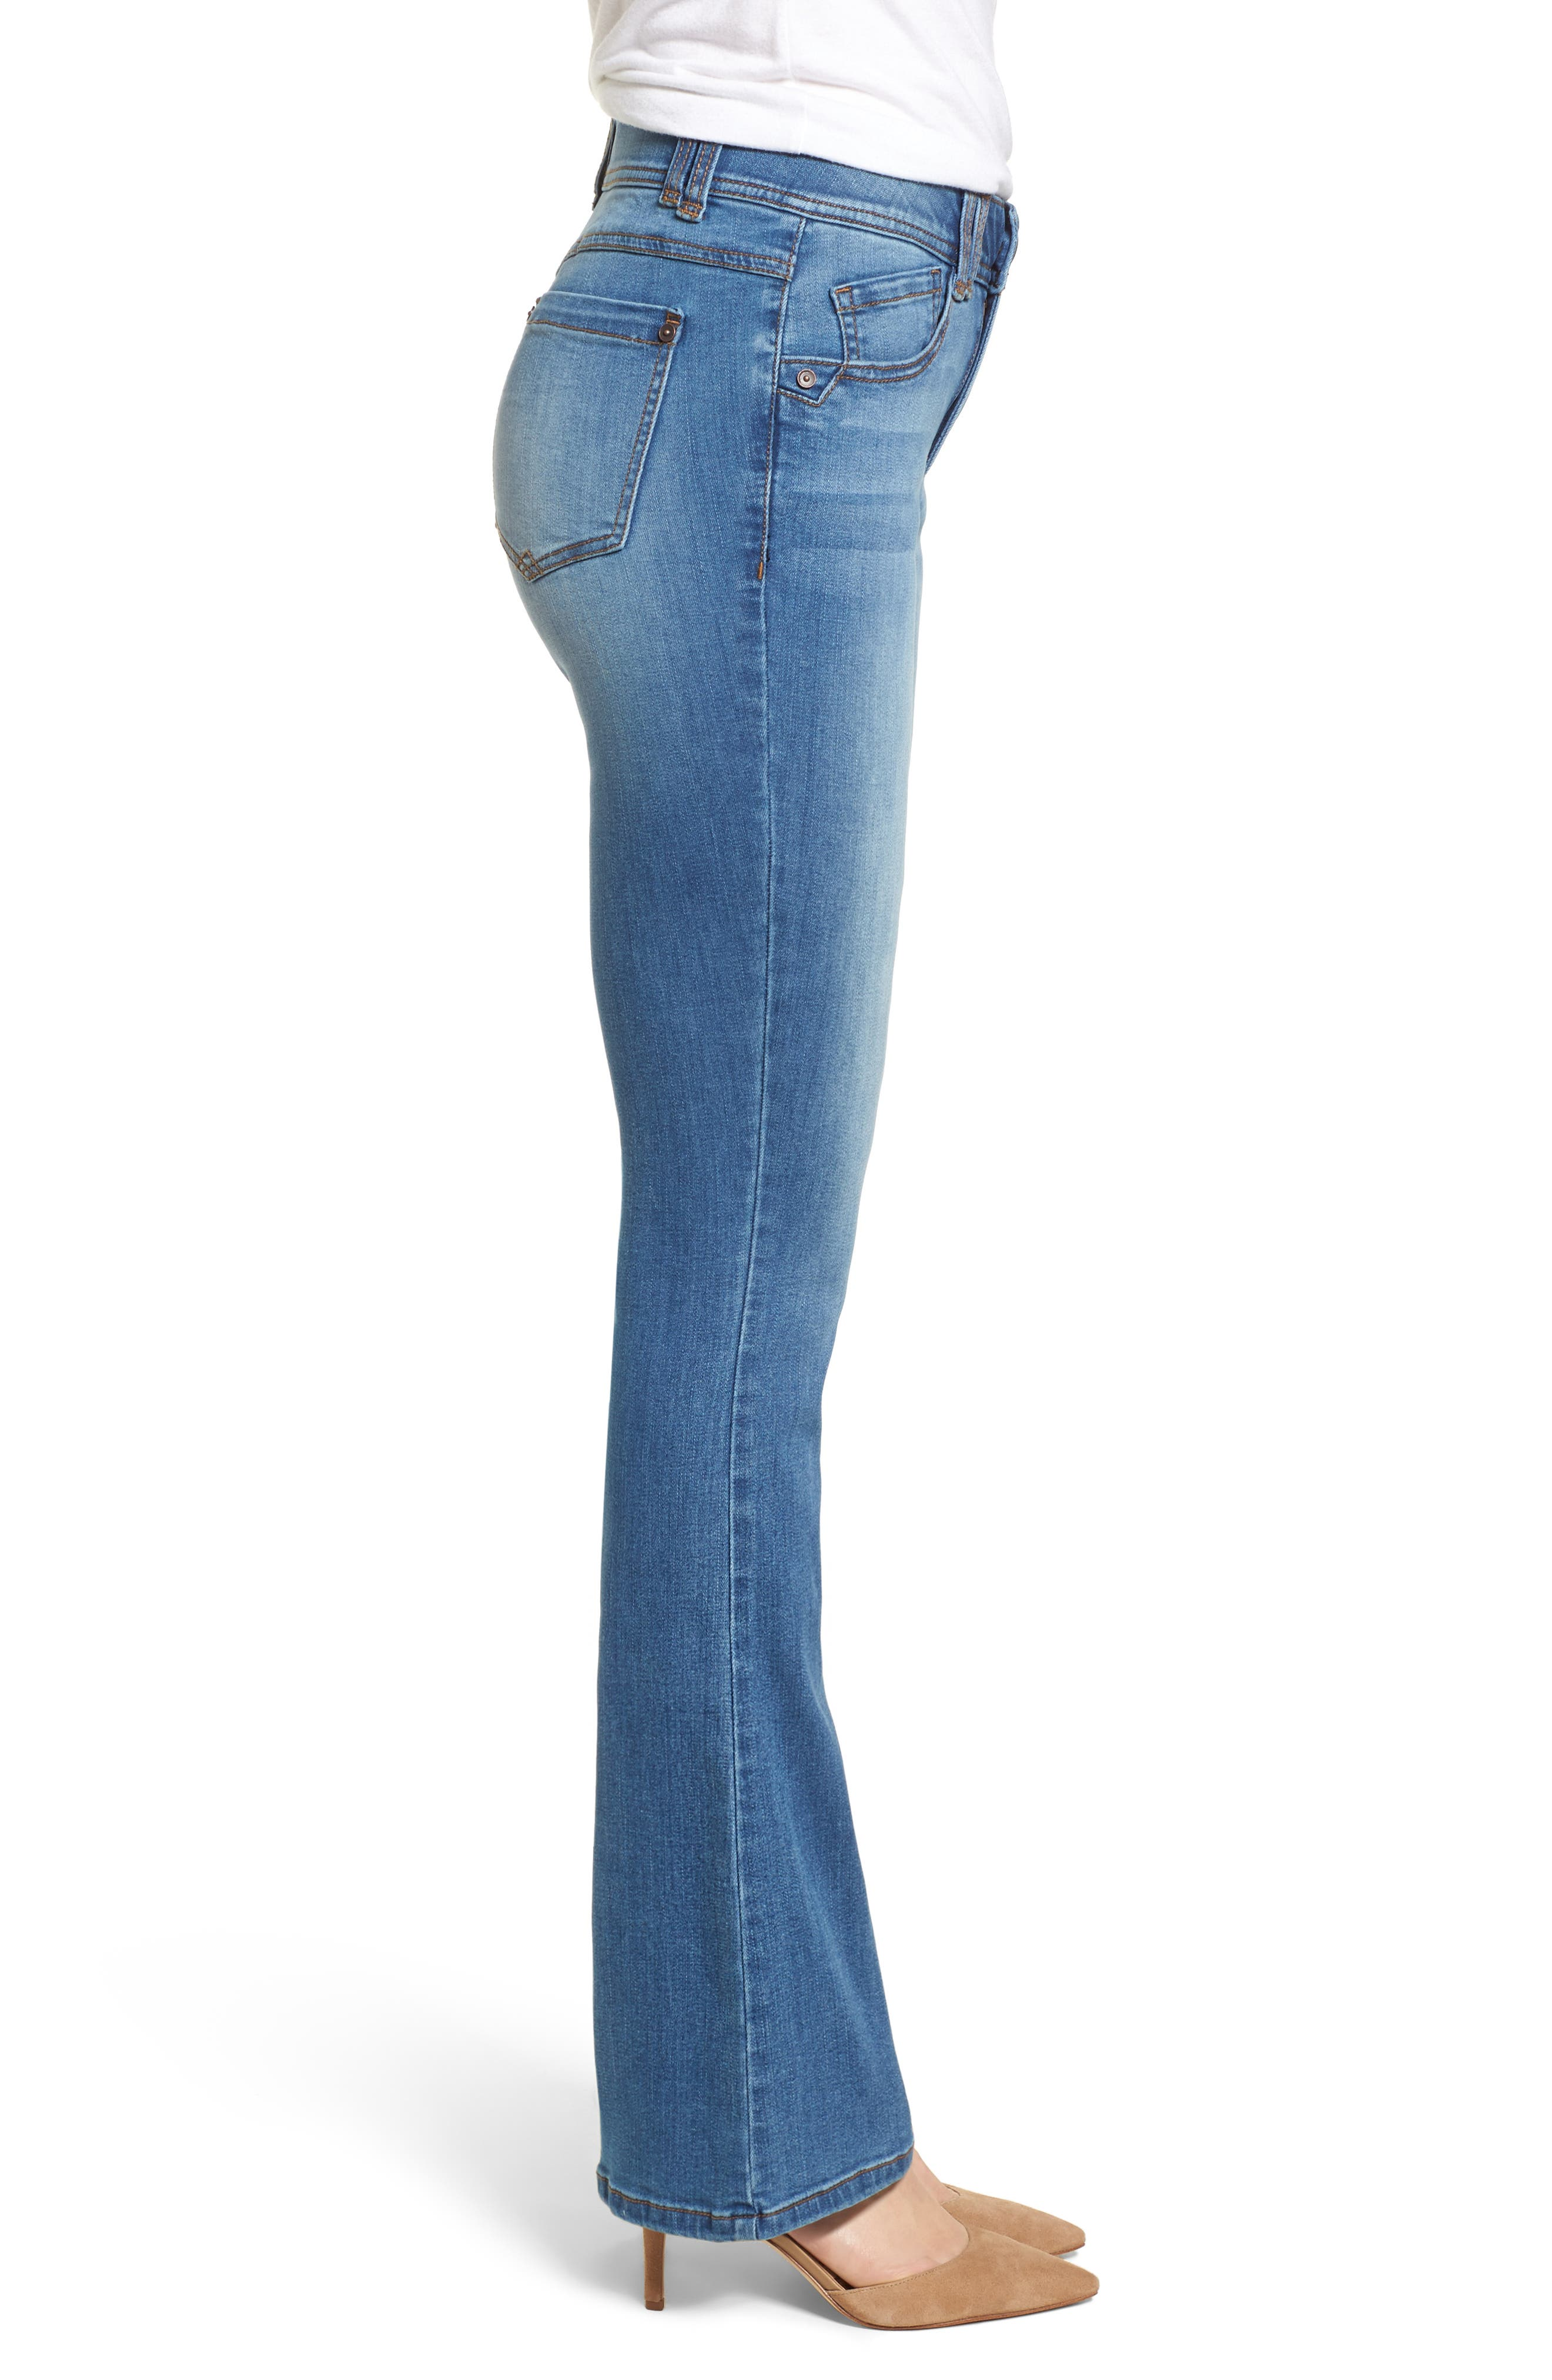 Ab-solution Itty Bitty Bootcut Jeans,                             Alternate thumbnail 3, color,                             LIGHT BLUE